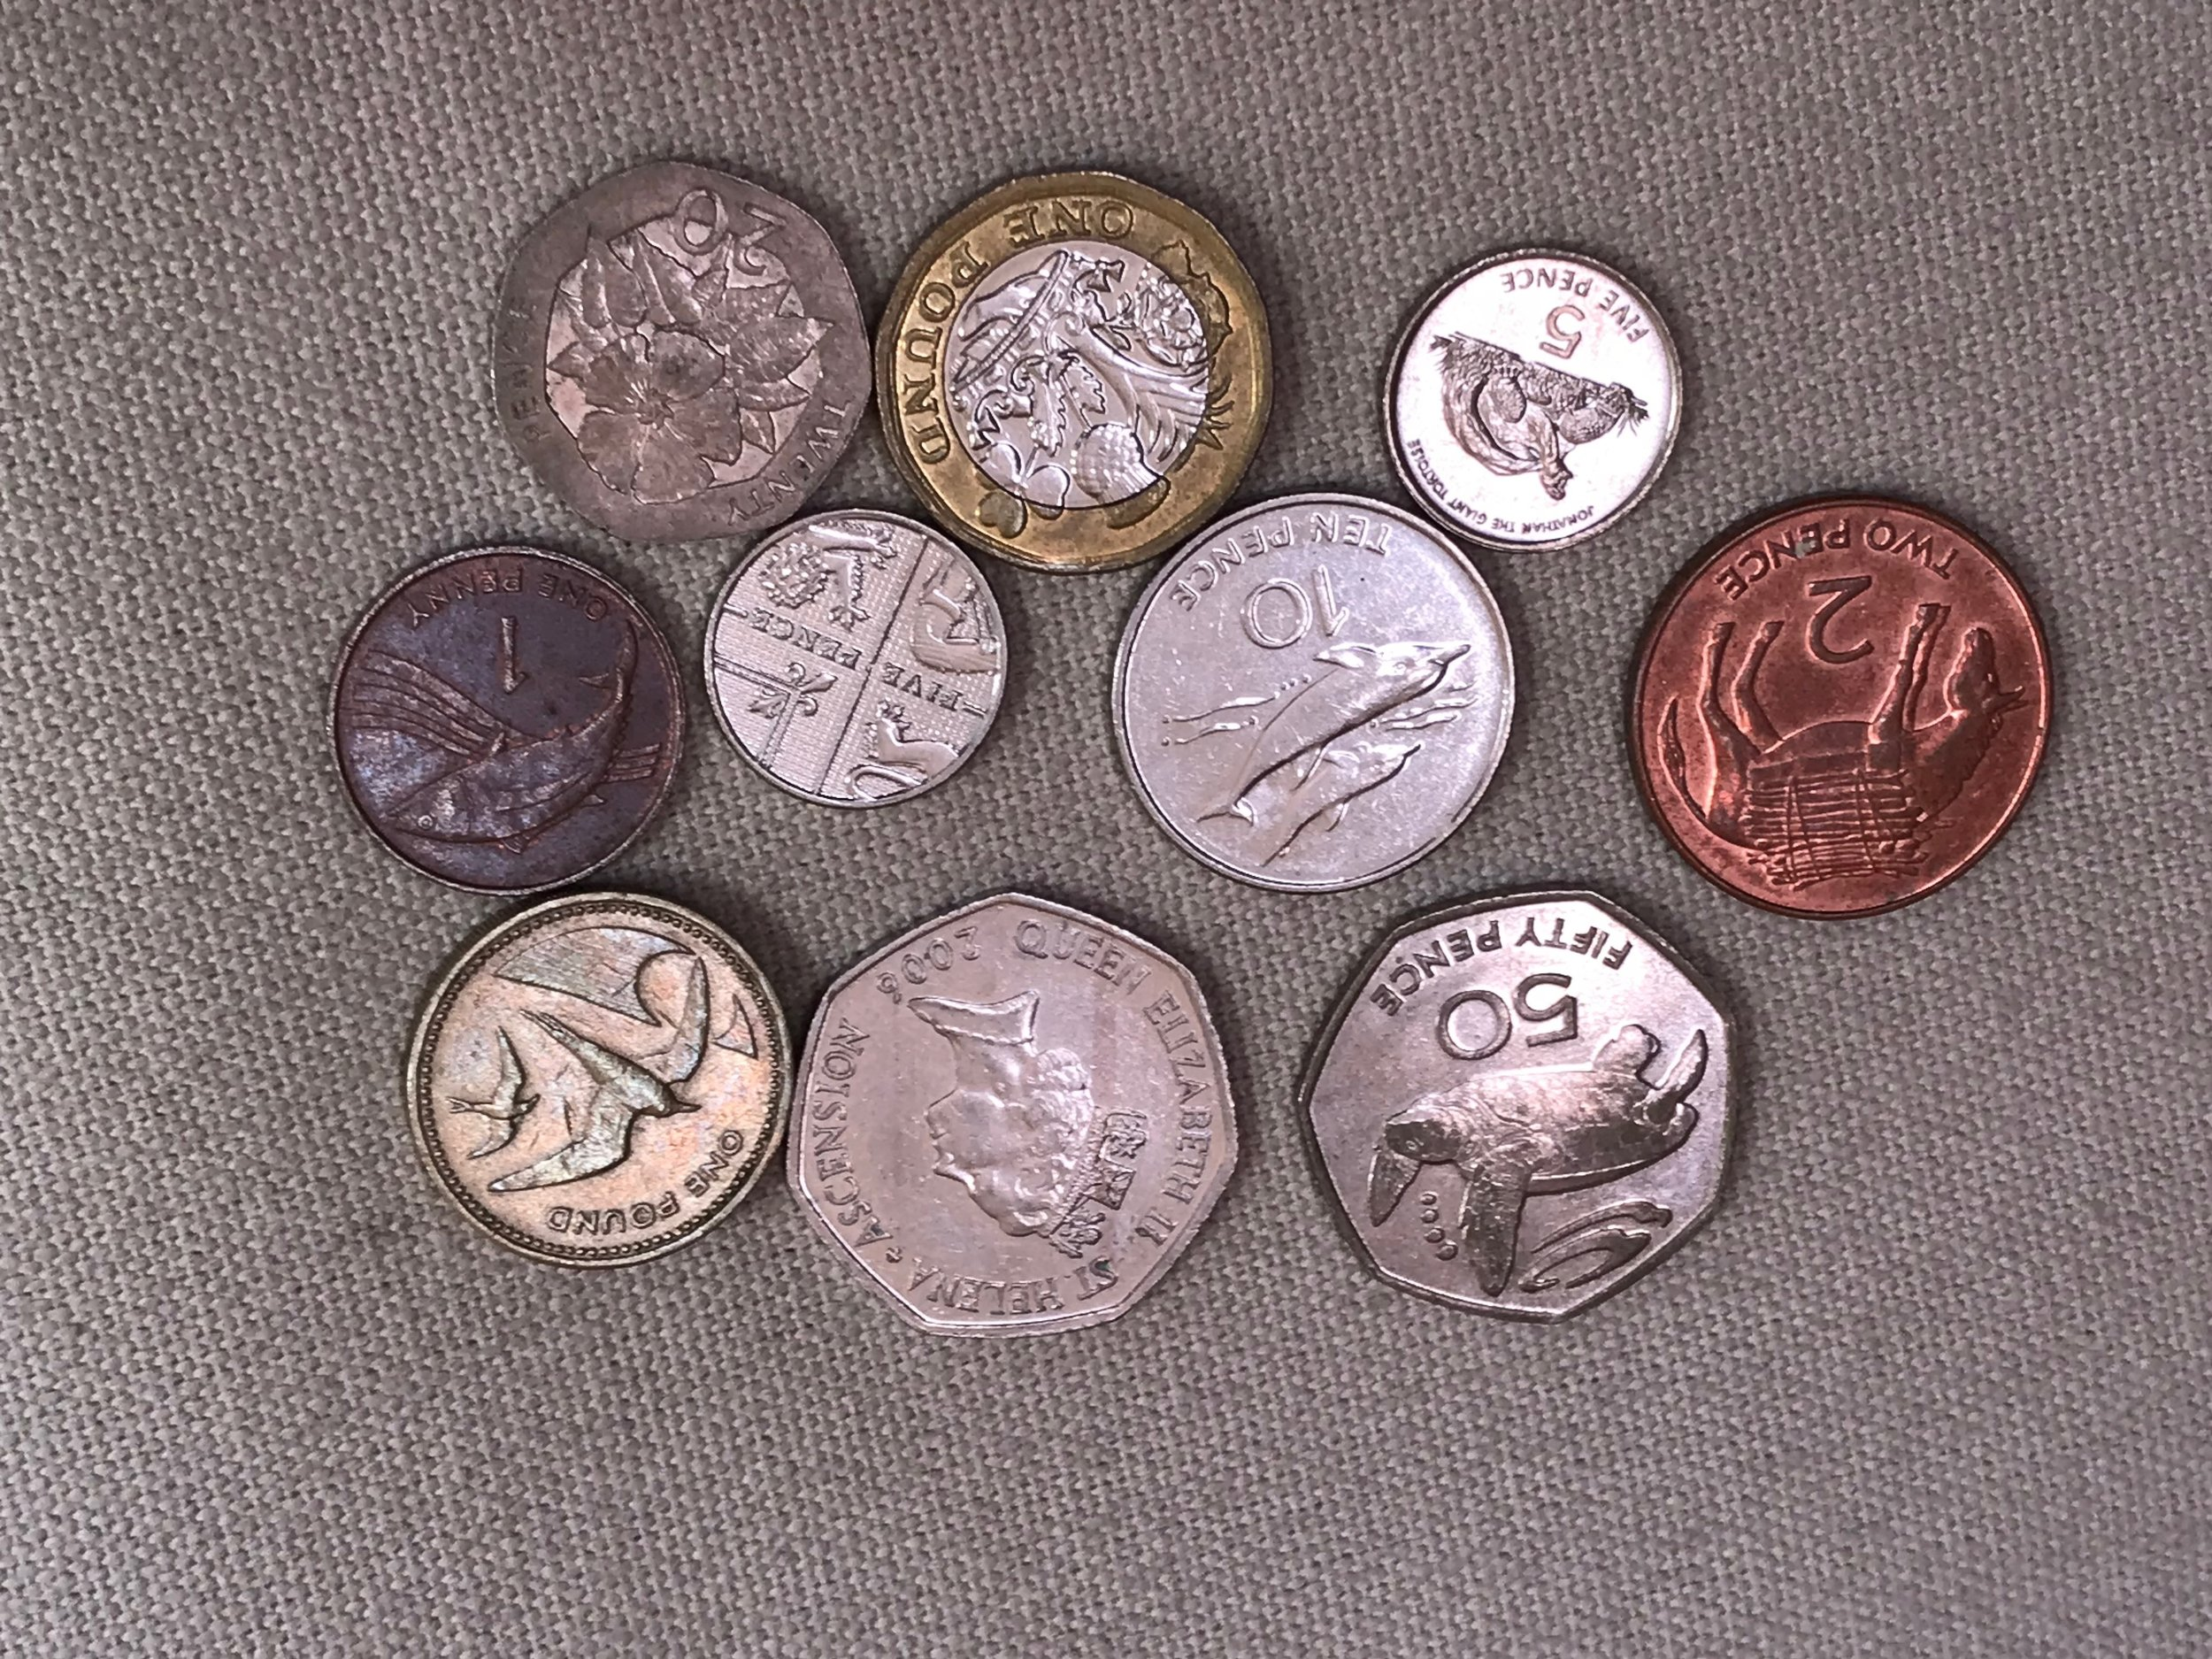 Local currency